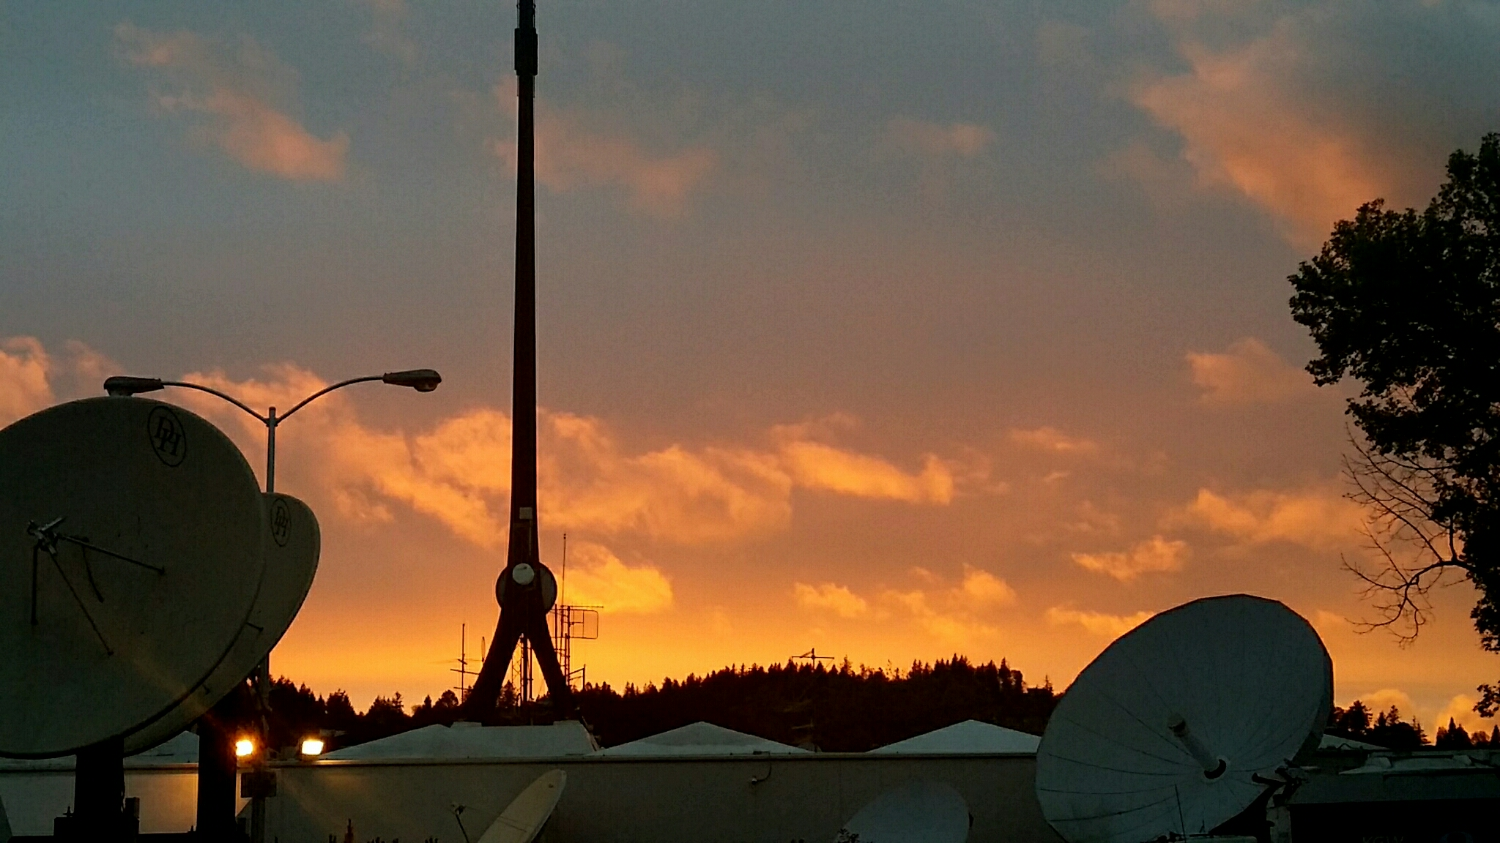 Sunset at the tv station earlier in the week... before Breaking News Friday,